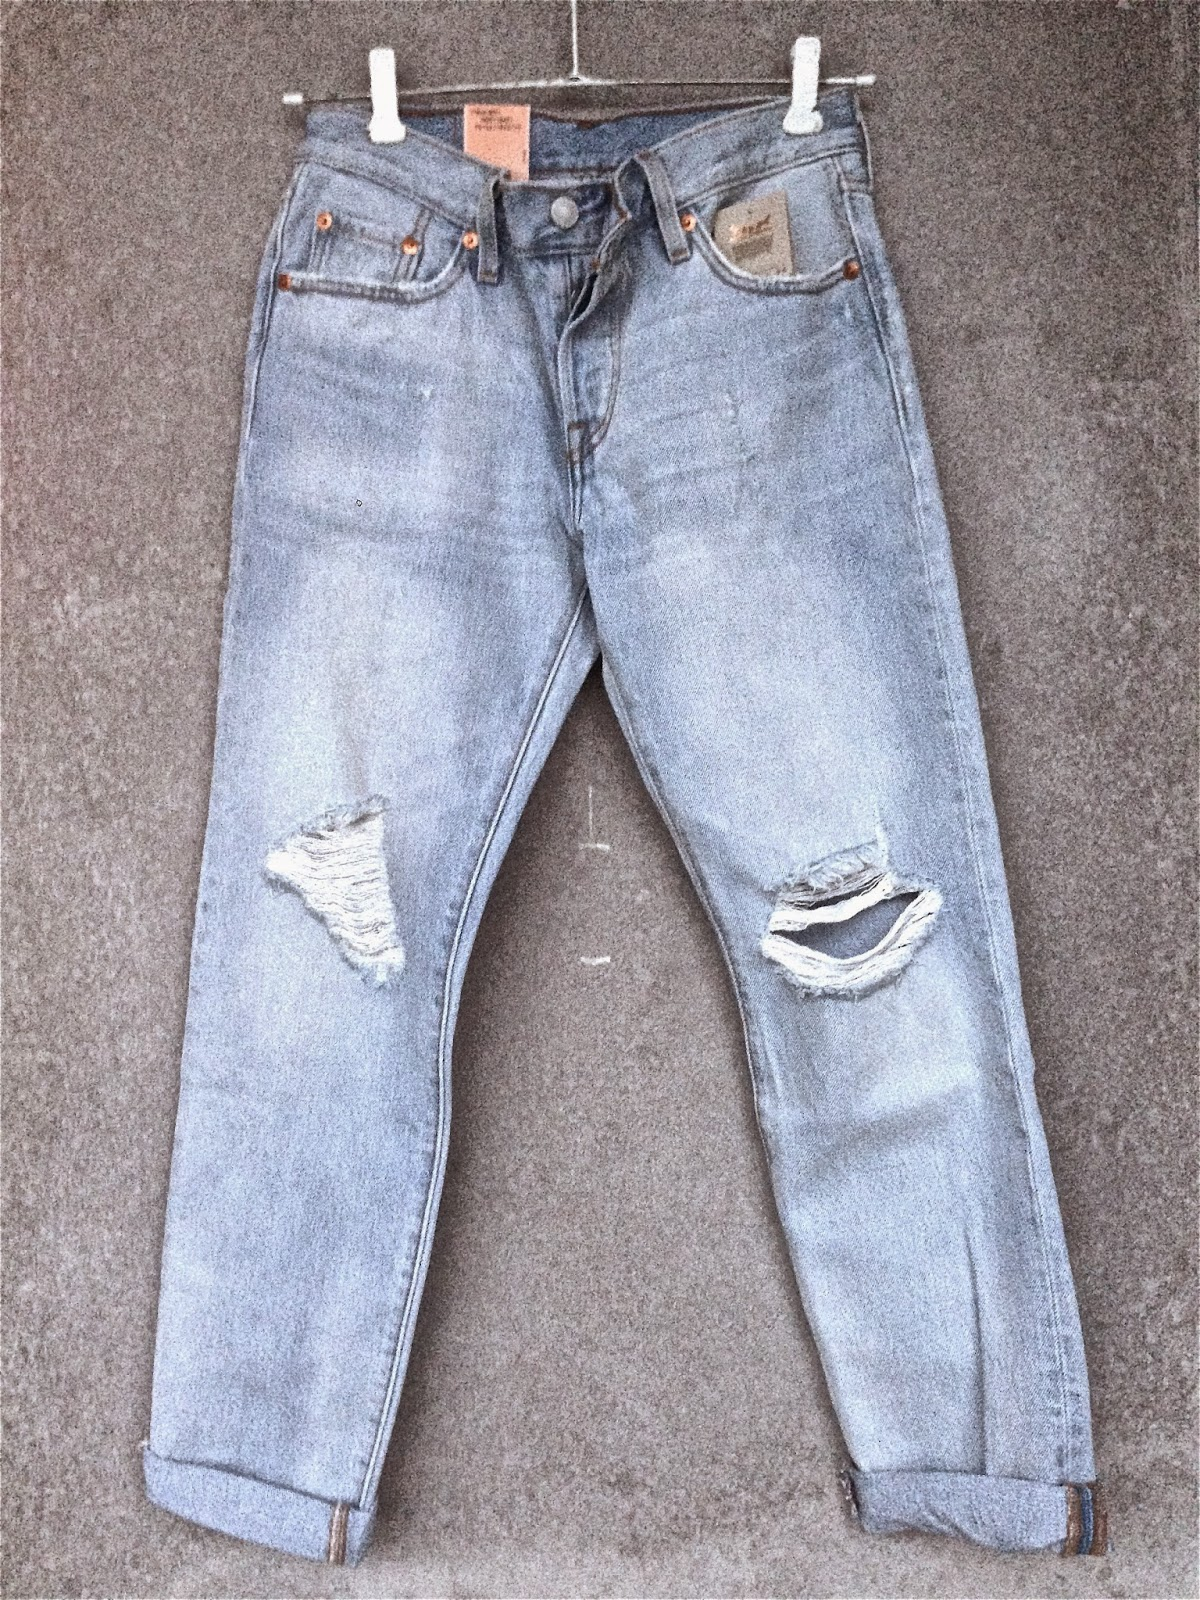 Levis, Levis 501, Levis 501 CT, 501CT, Old Favorite, 501 women, New Levis model, jeans, light blue jeans, boyfriend jeans, relaxed fit jeans